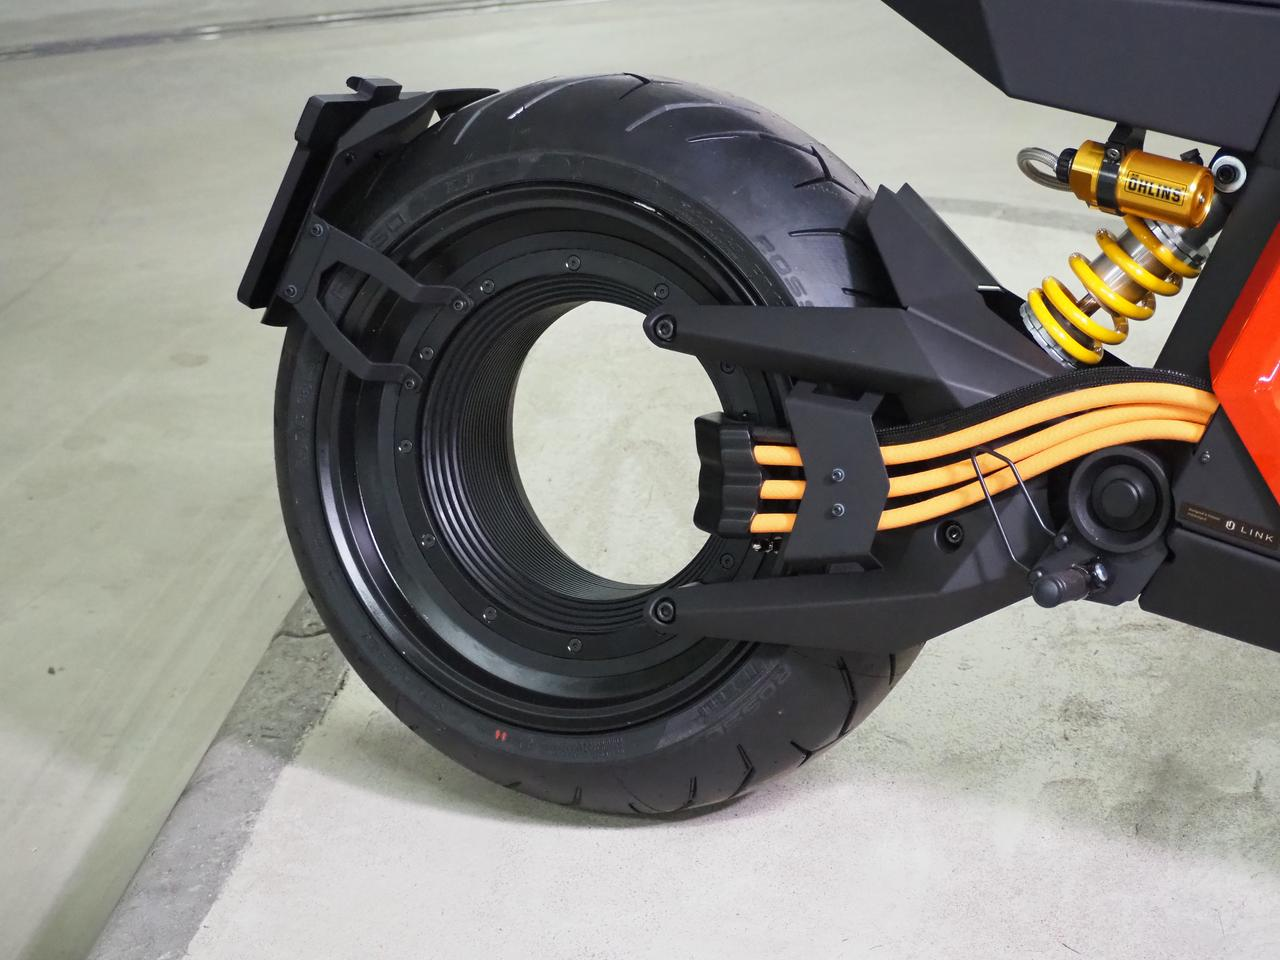 People will make the shape of that rear wheel with their mouths